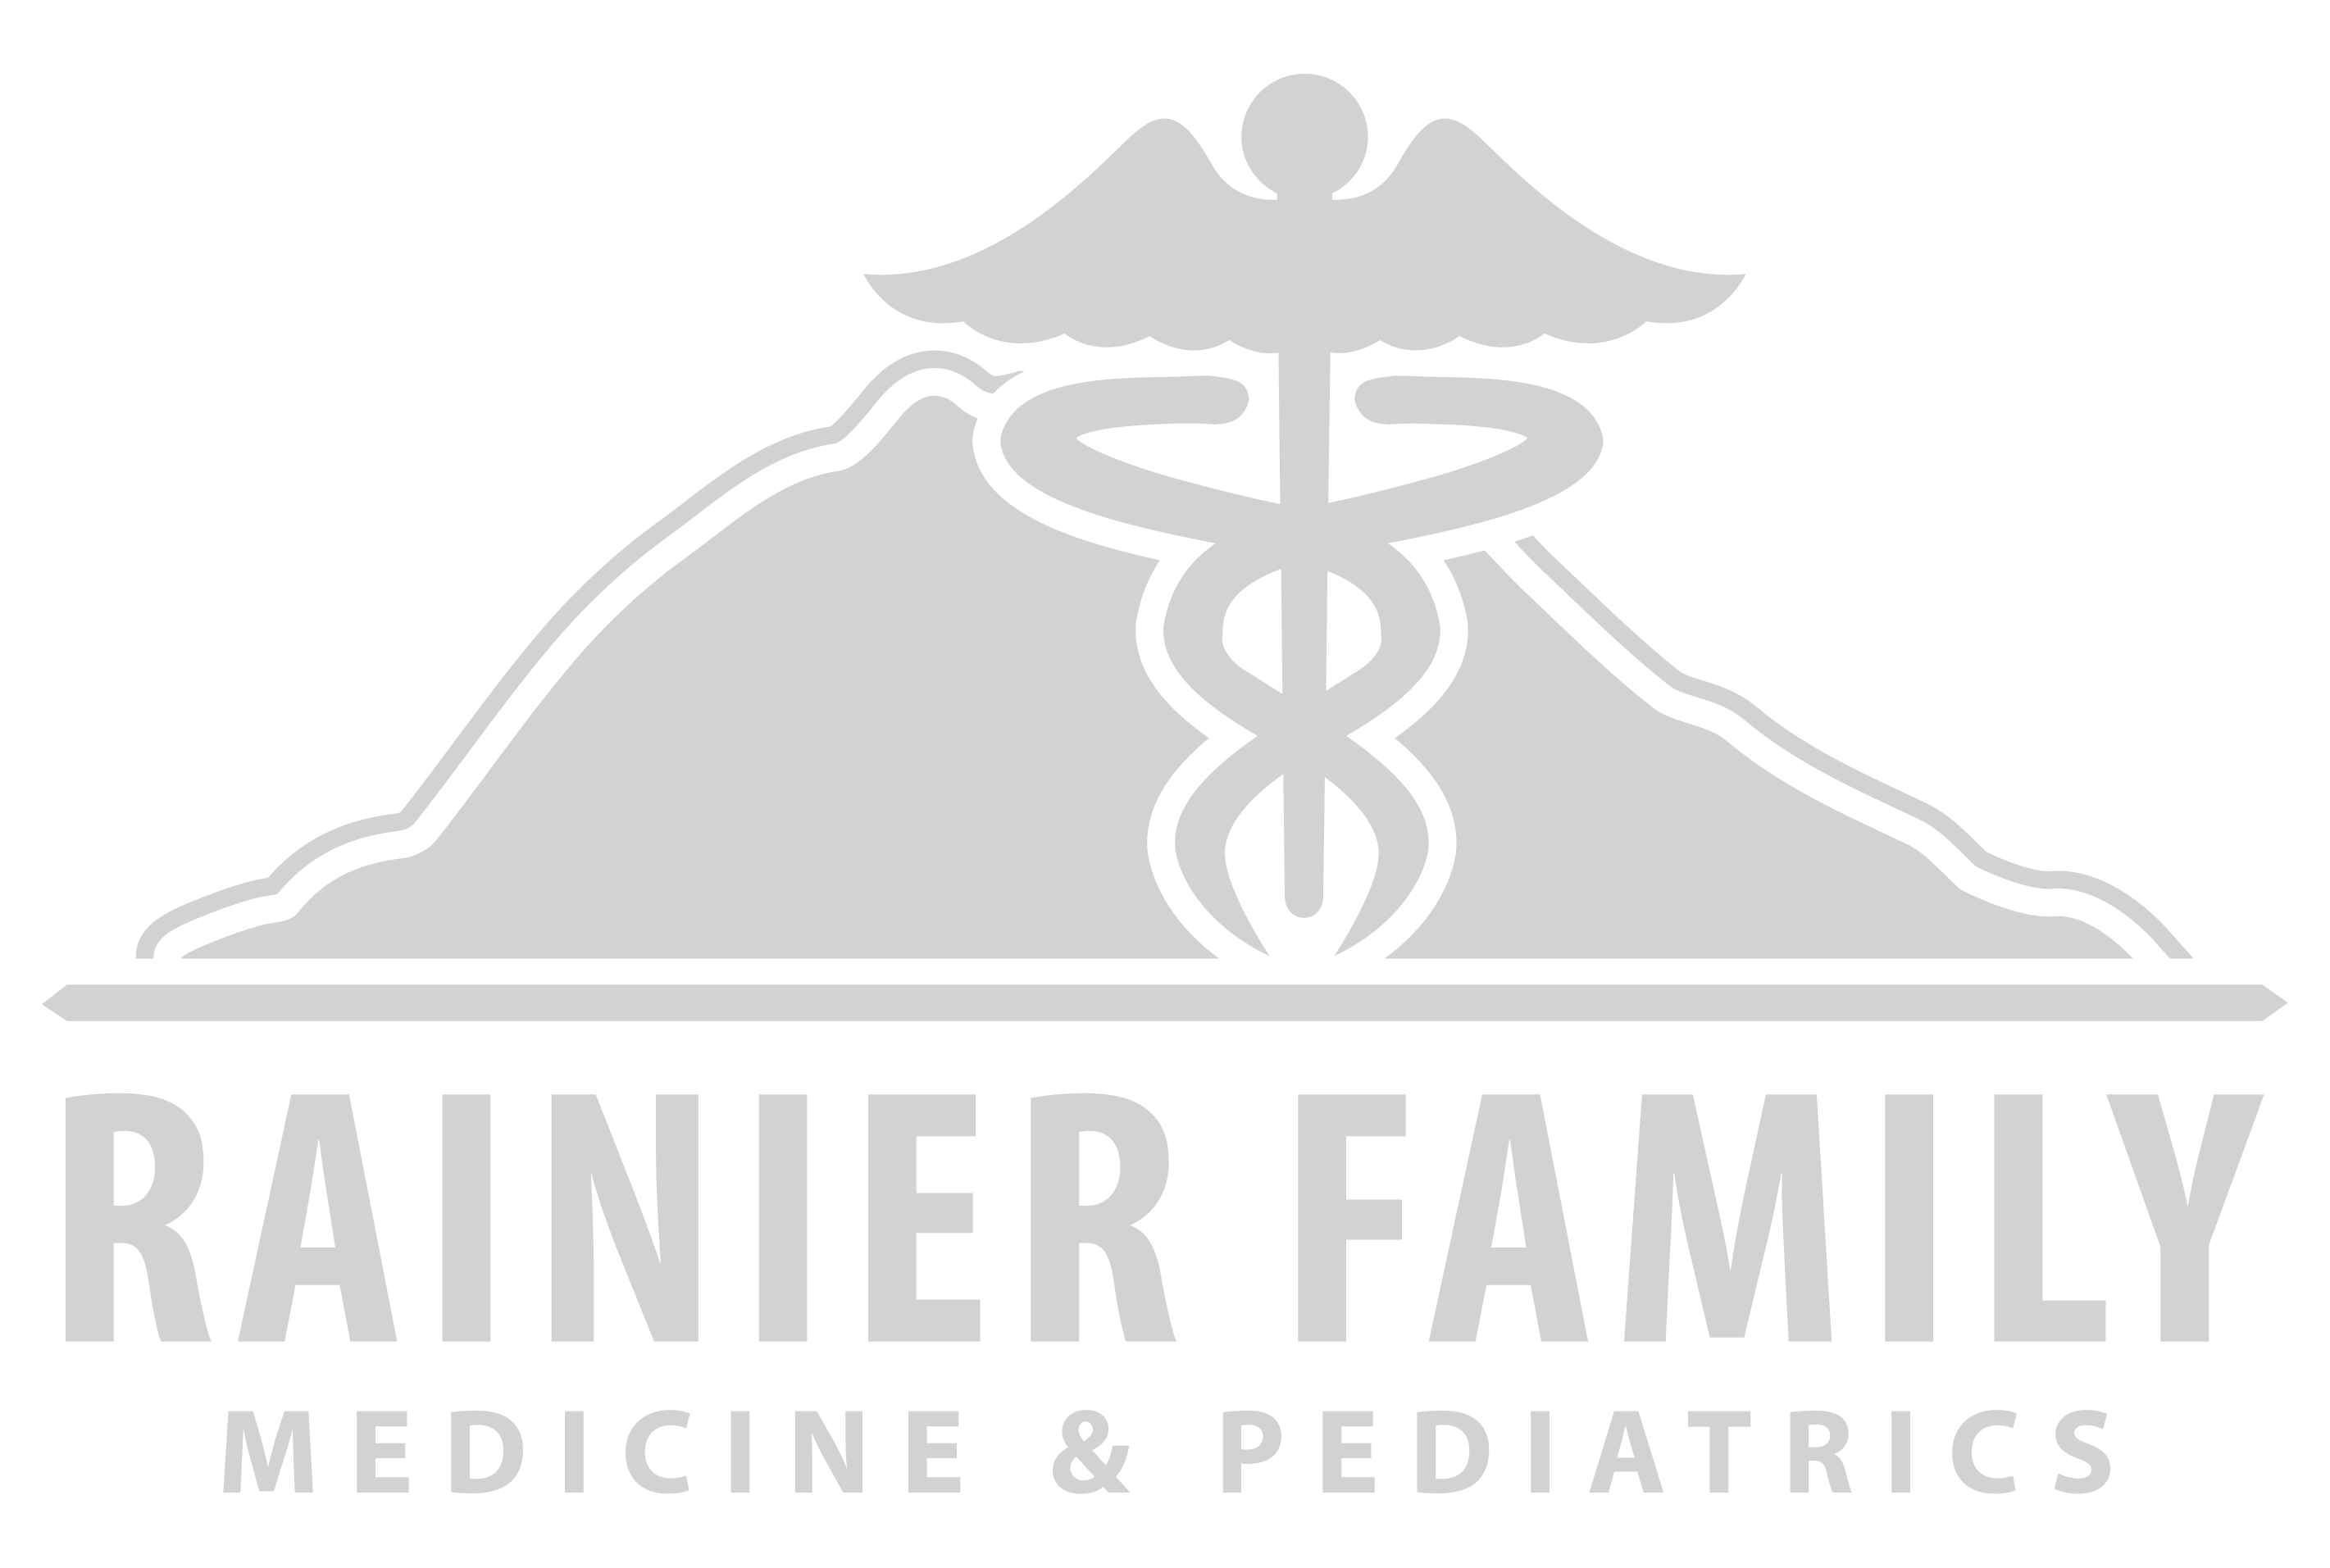 Rainier Family Medicine & Pediatrics